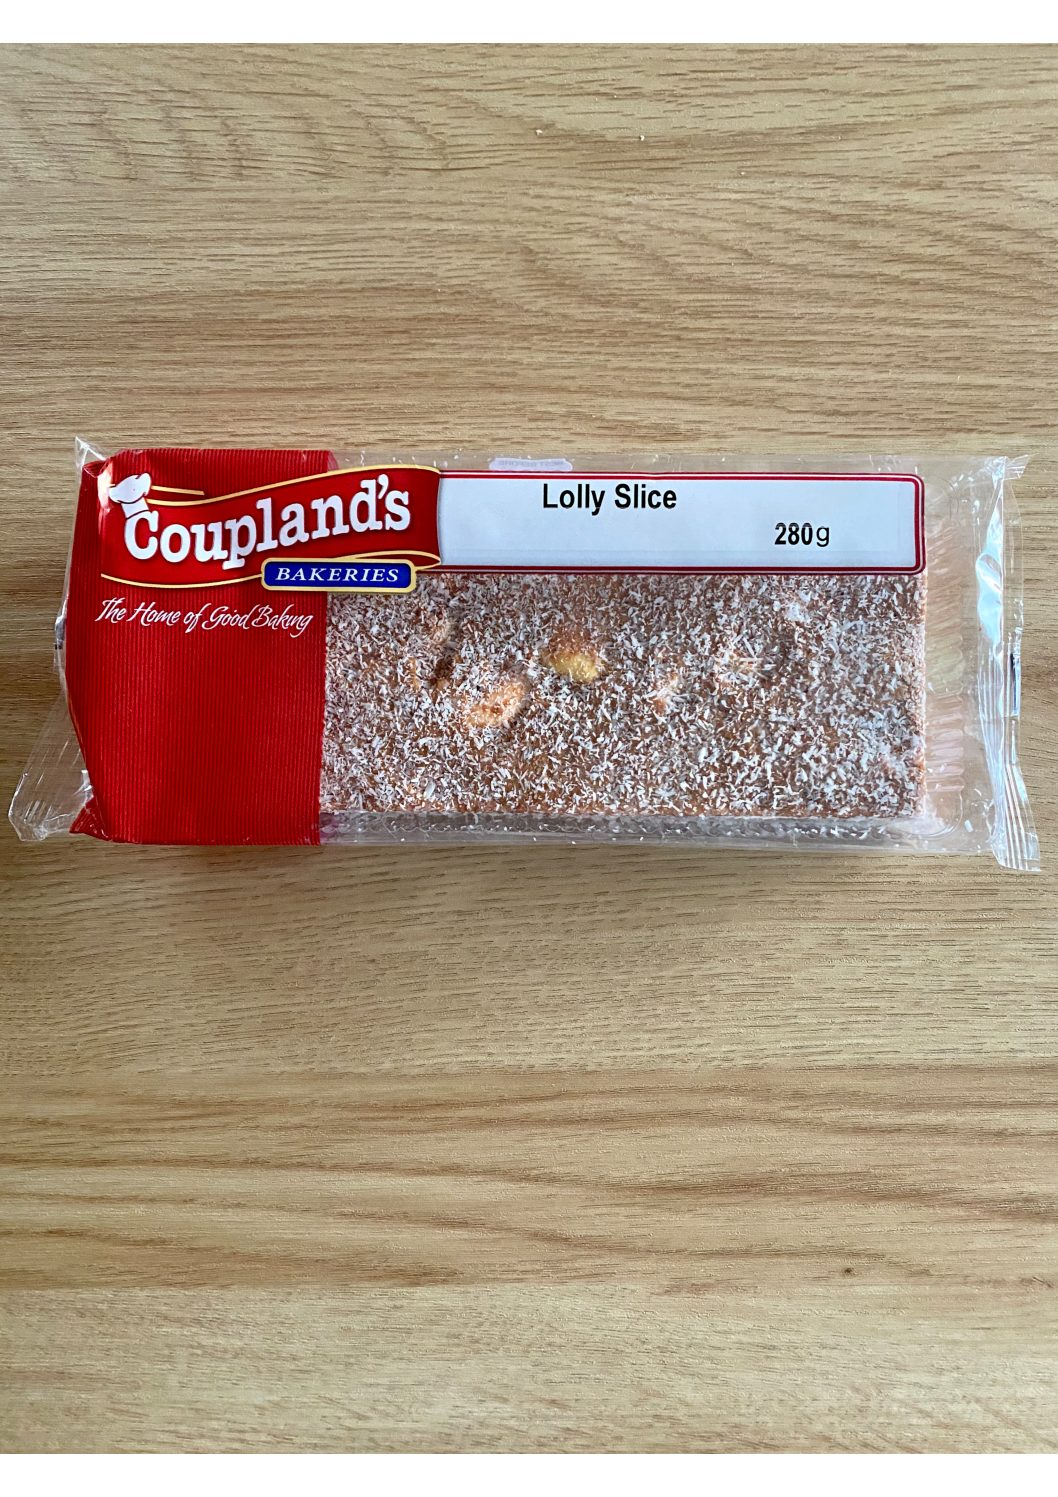 Couplands Lolly Cake Slice 280g